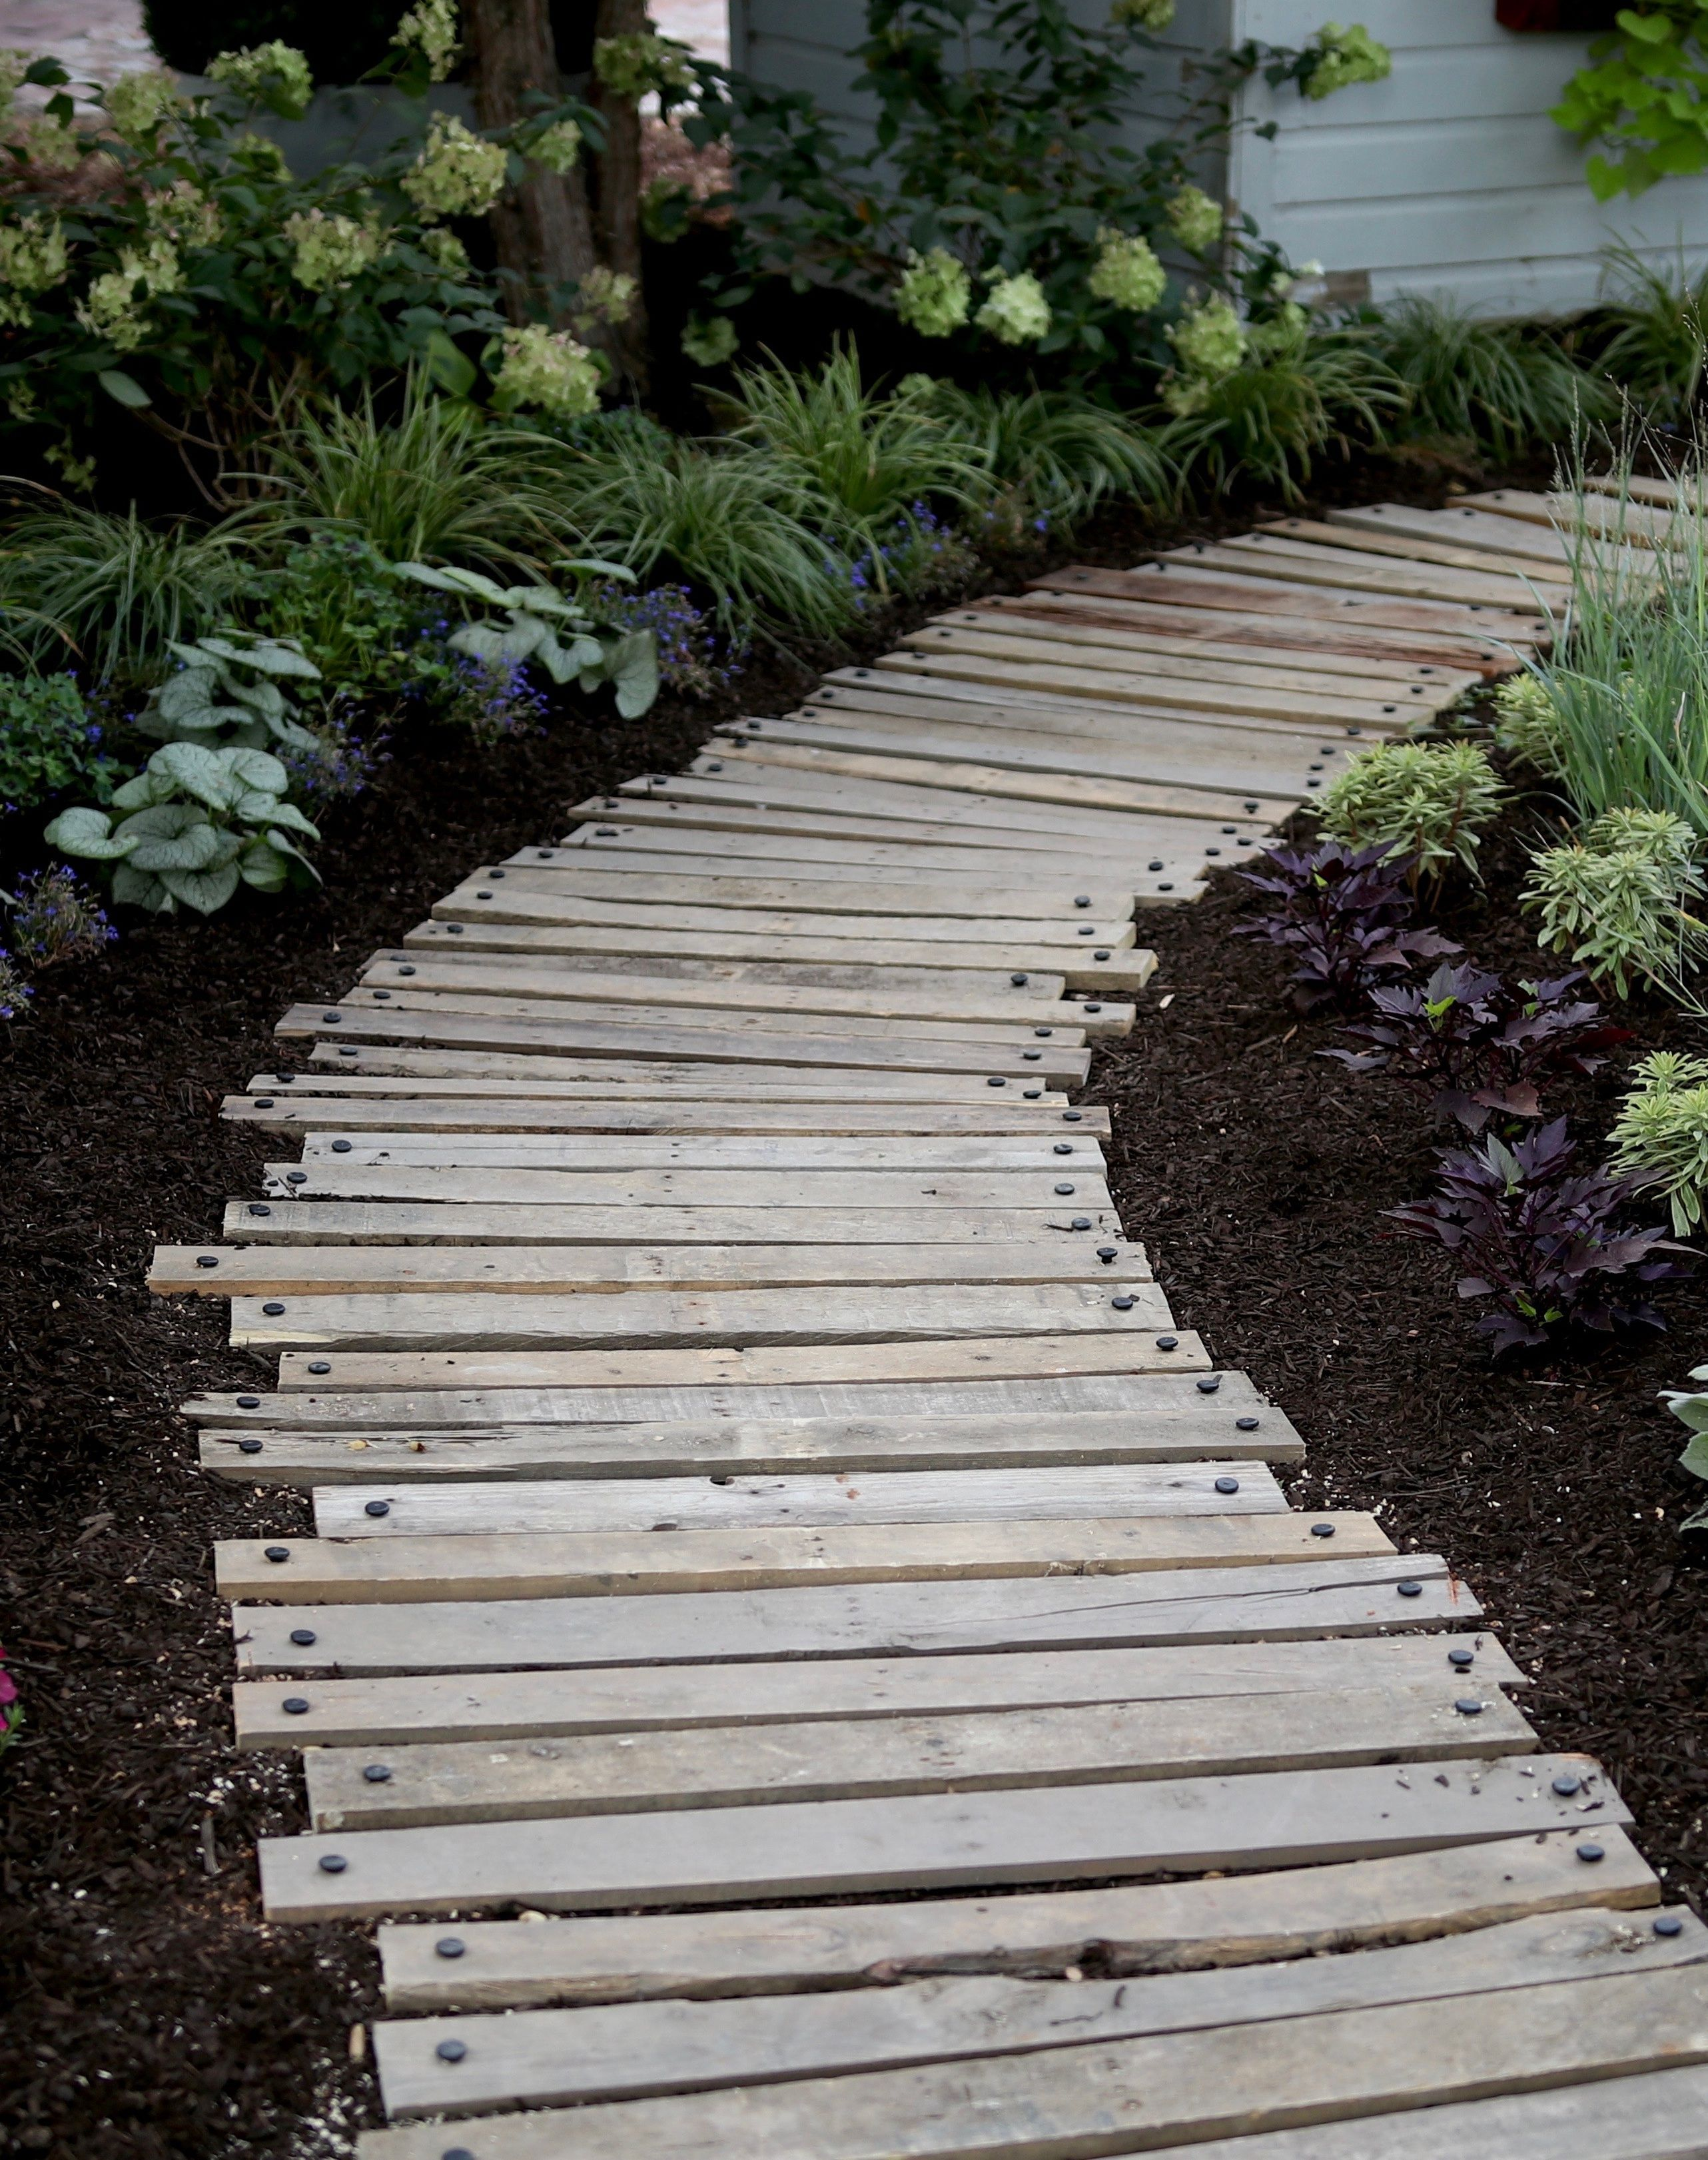 Watch and learn how to repurpose old pallets into a sweet ...